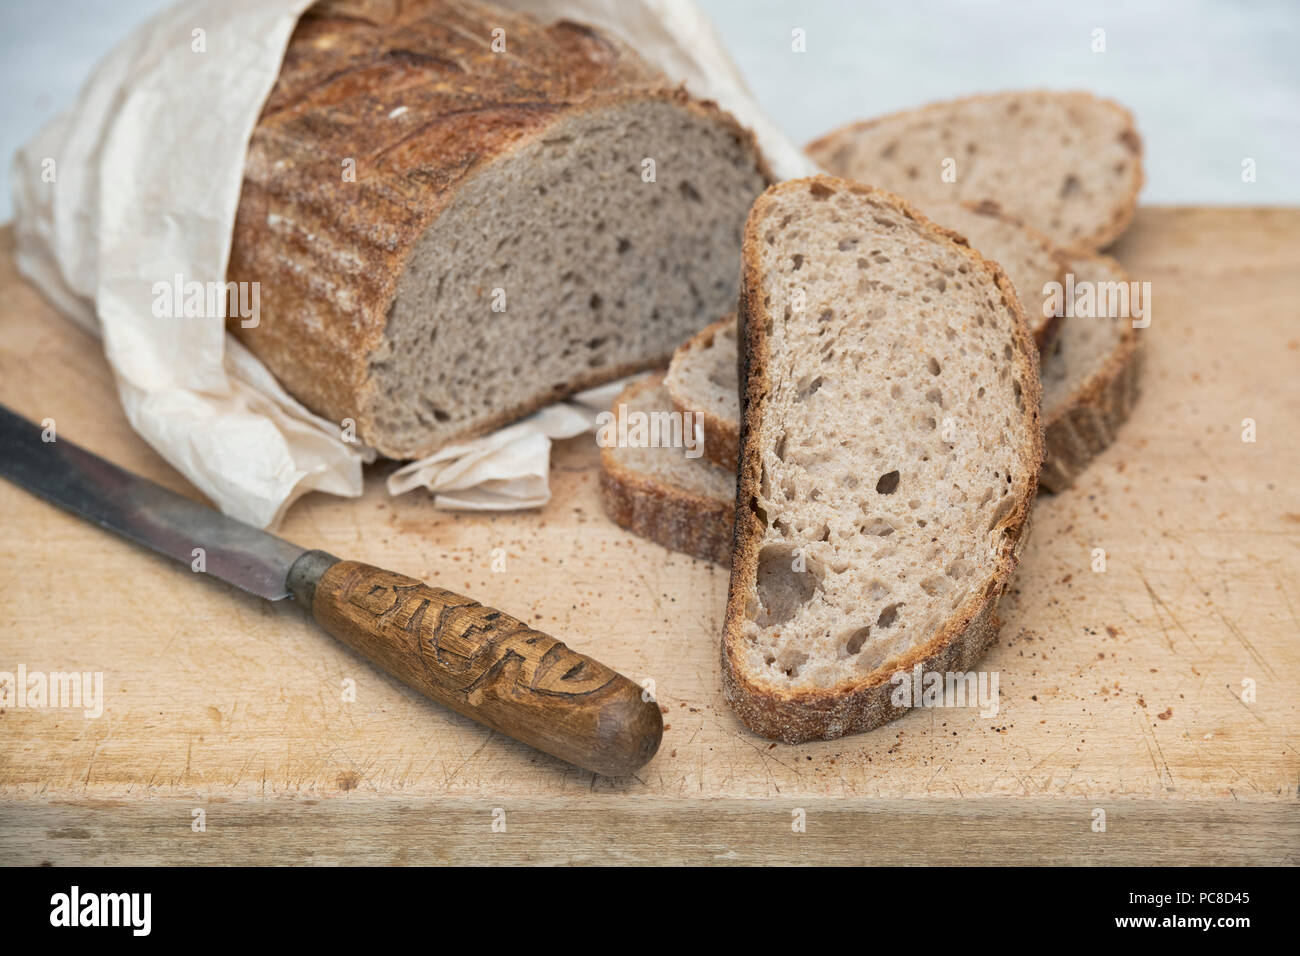 Sourdough bread with a vintage bread knife on a bread board. UK Stock Photo